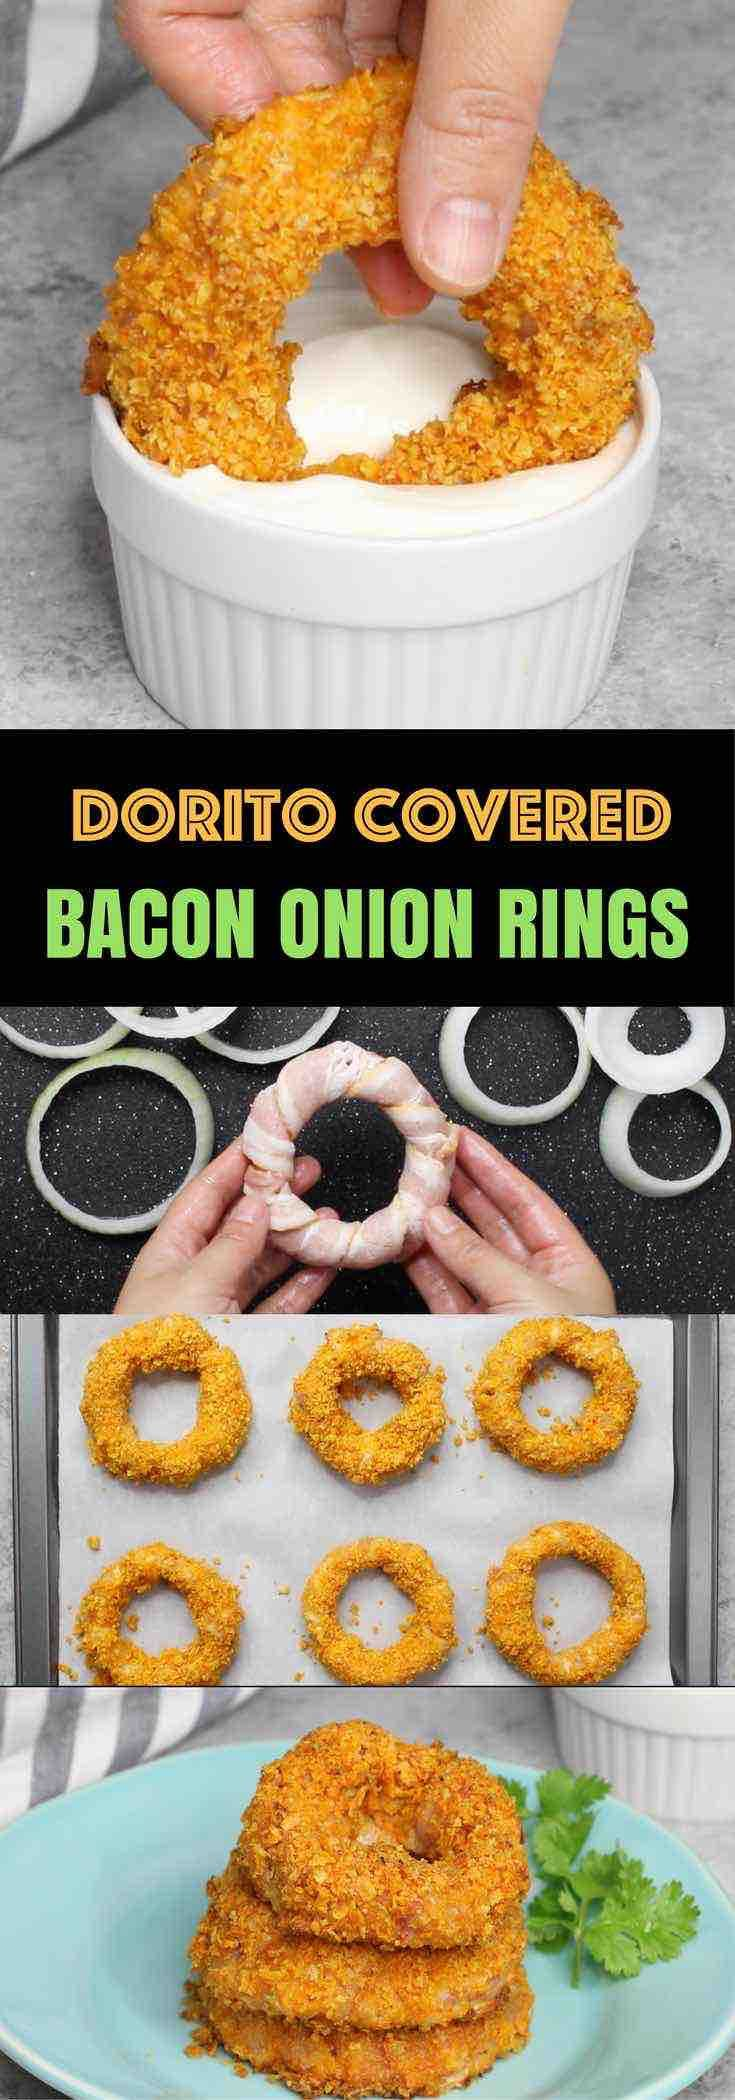 Dorito Bacon Onion Rings Recipe (With Video) | TipBuzz